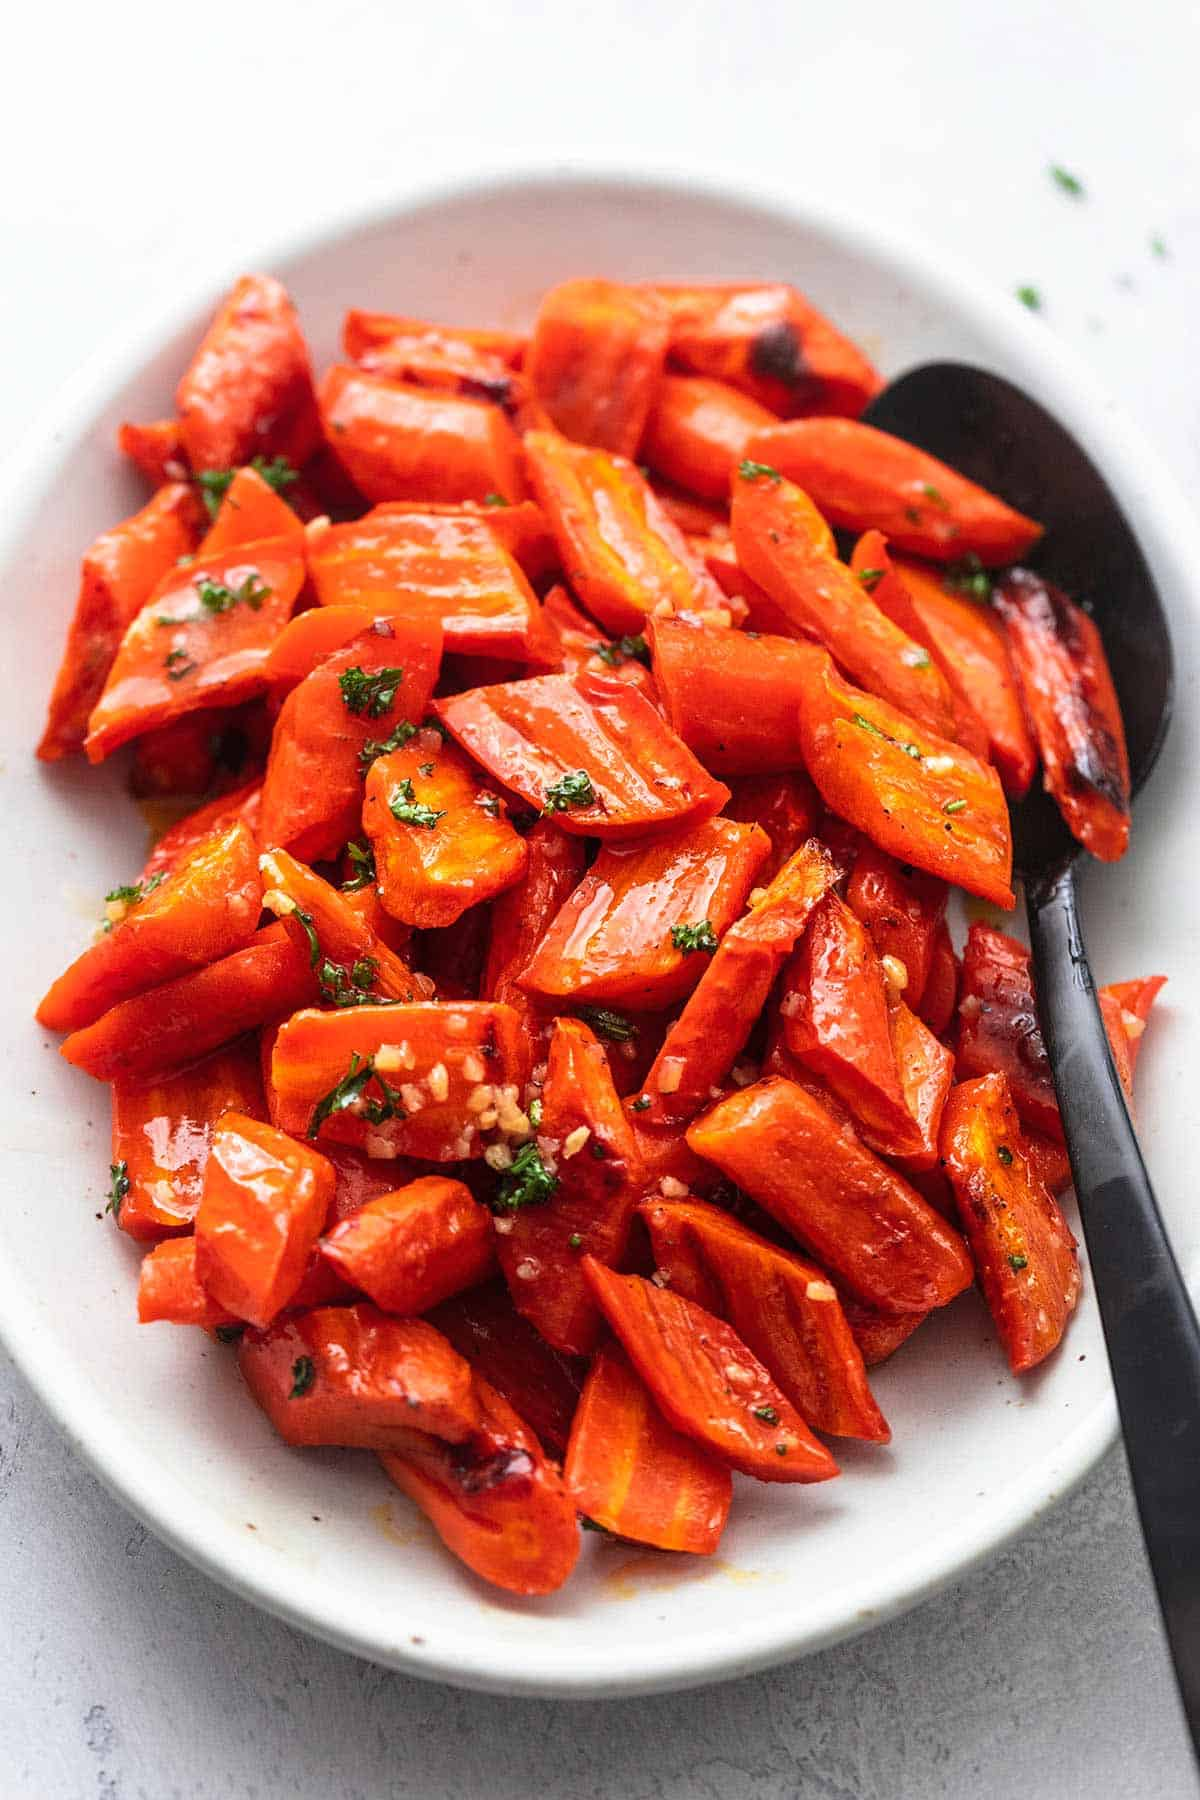 roasted honey garlic glazed carrots on a platter with a serving spoon.